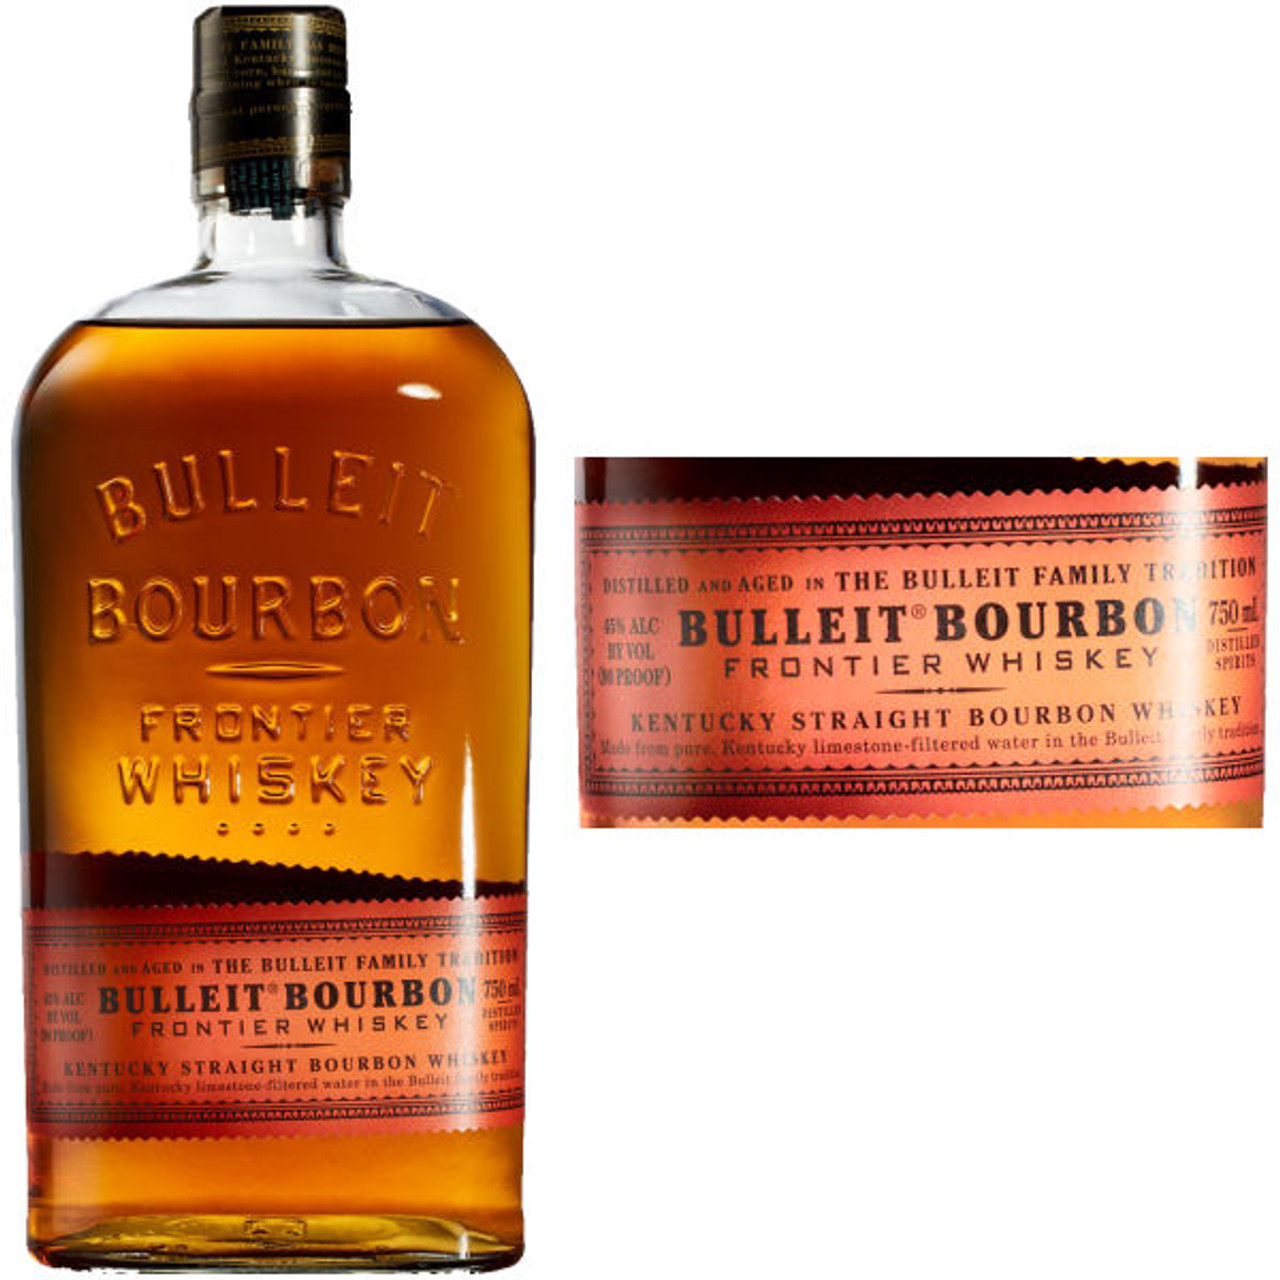 Bulleit Bourbon Kentucky Straight Bourbon Whiskey 750ml